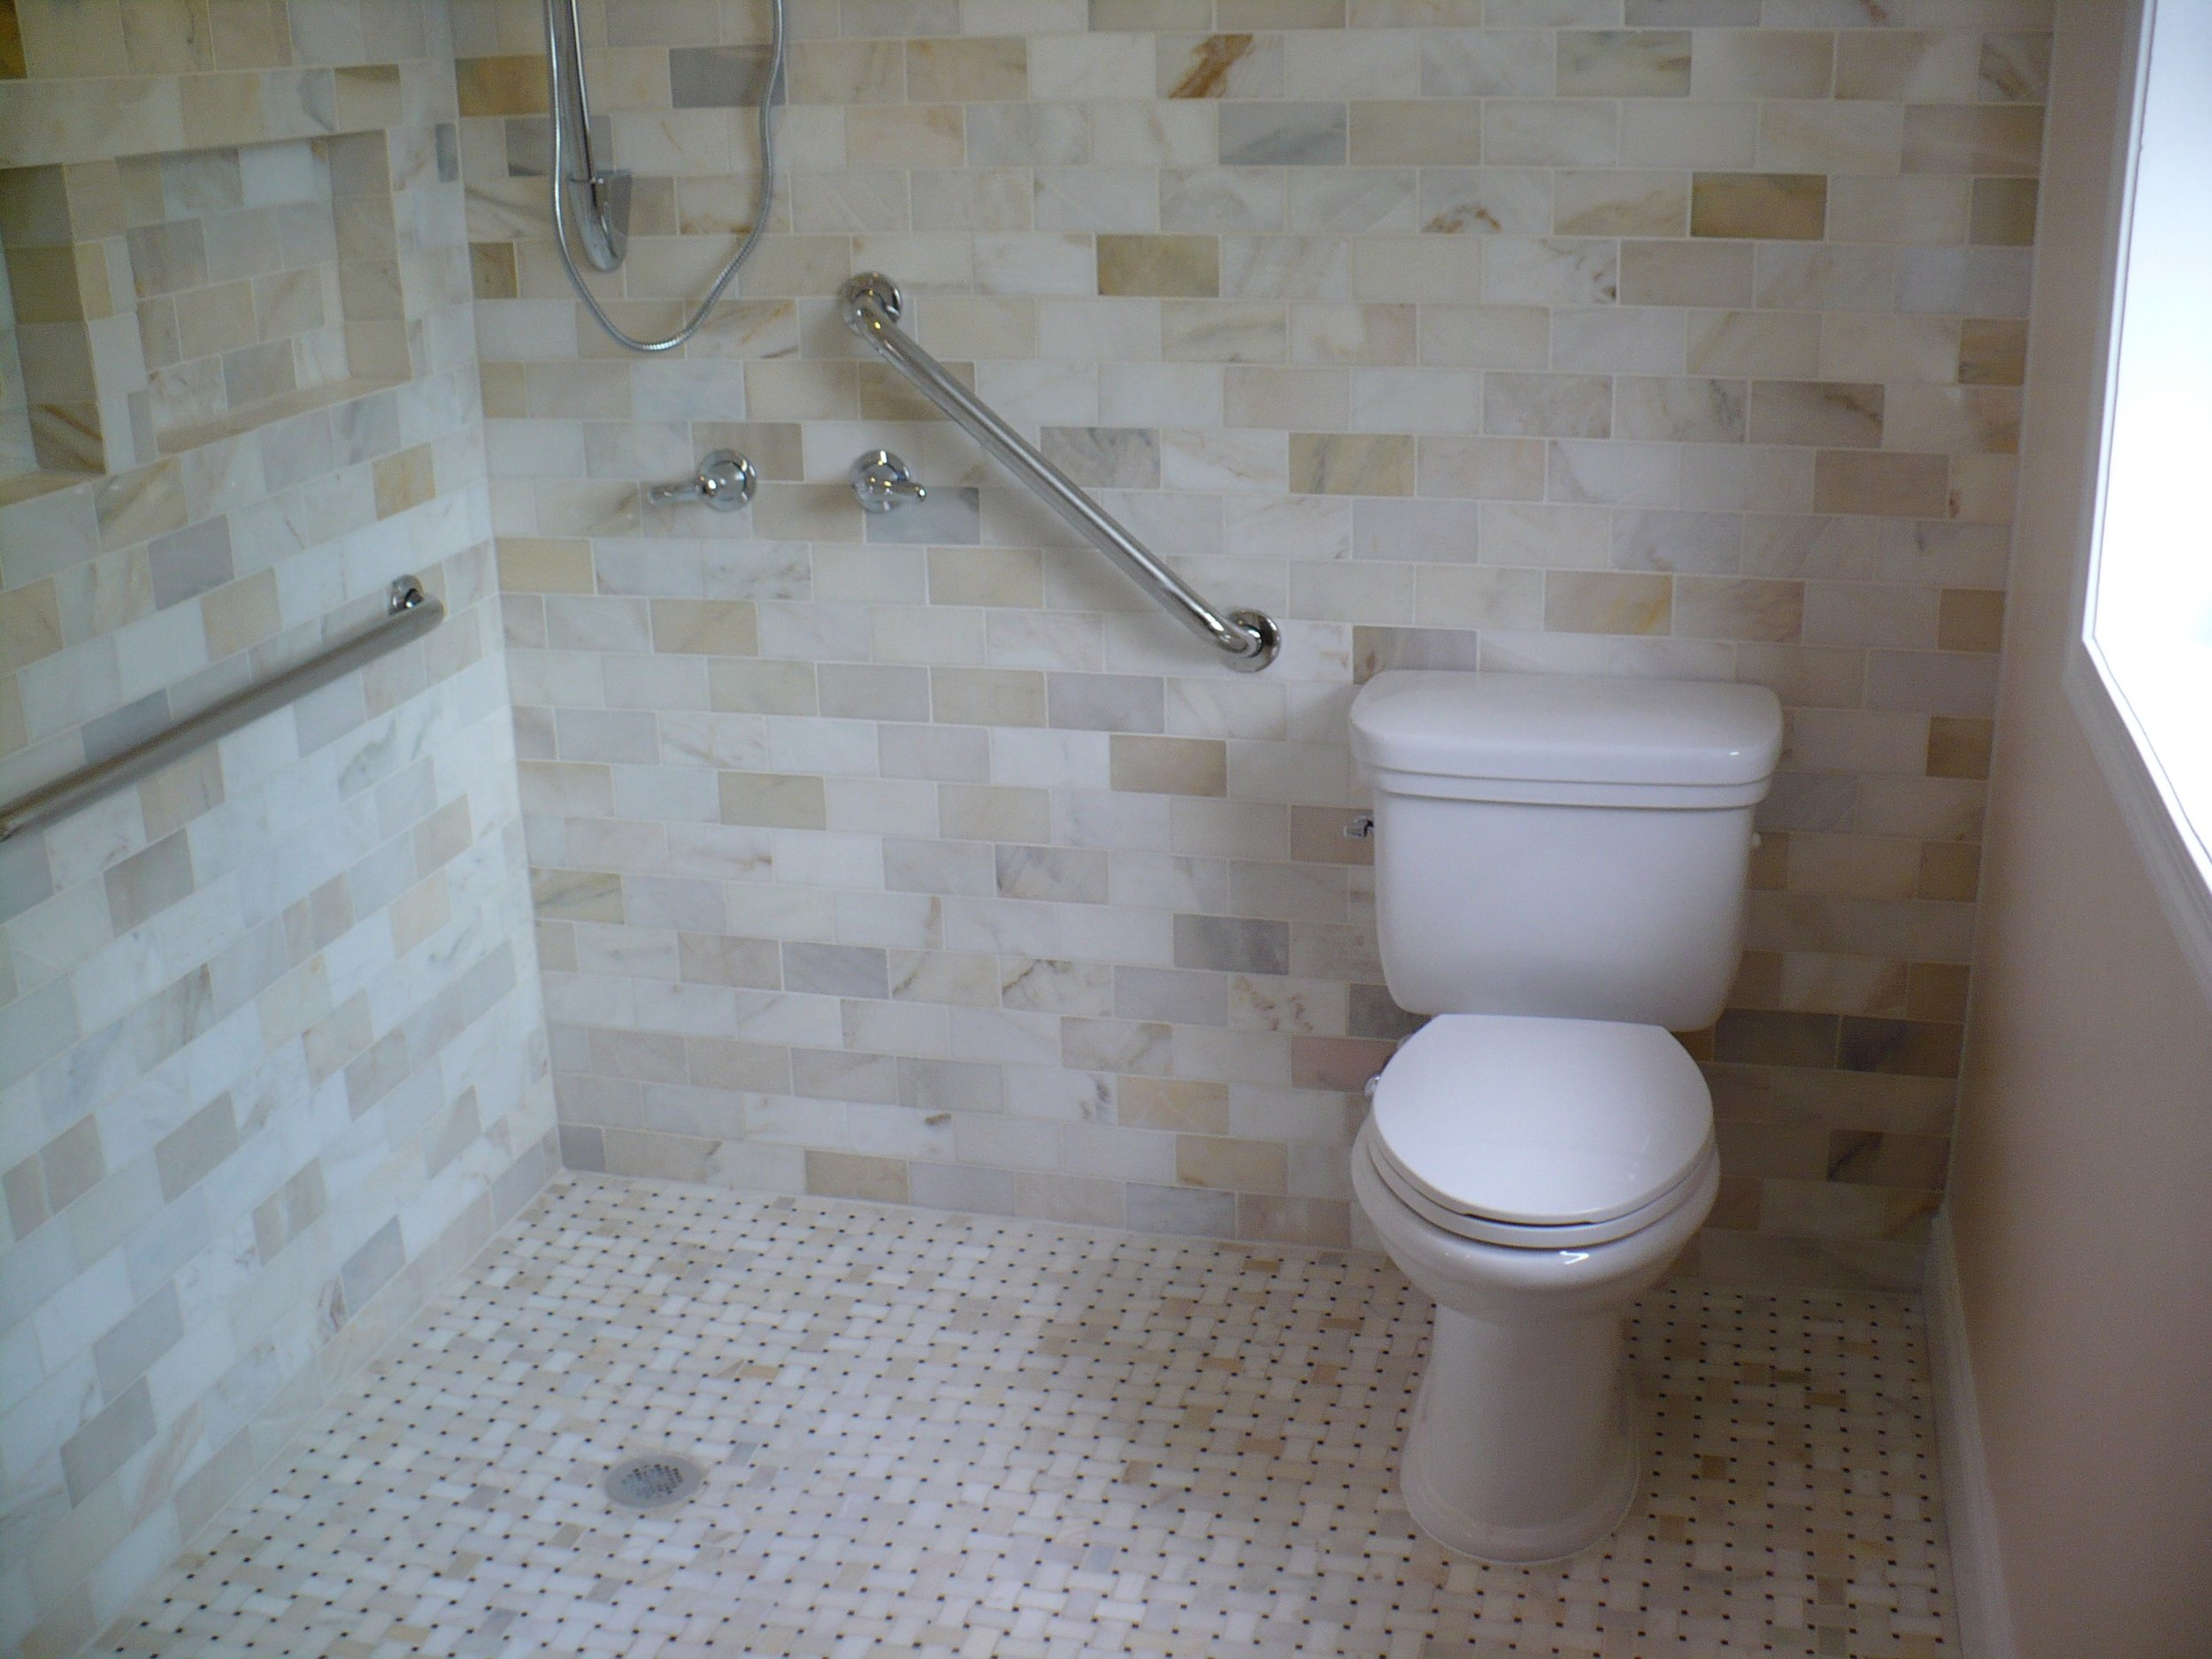 Handicap-accessible shower (curbless)